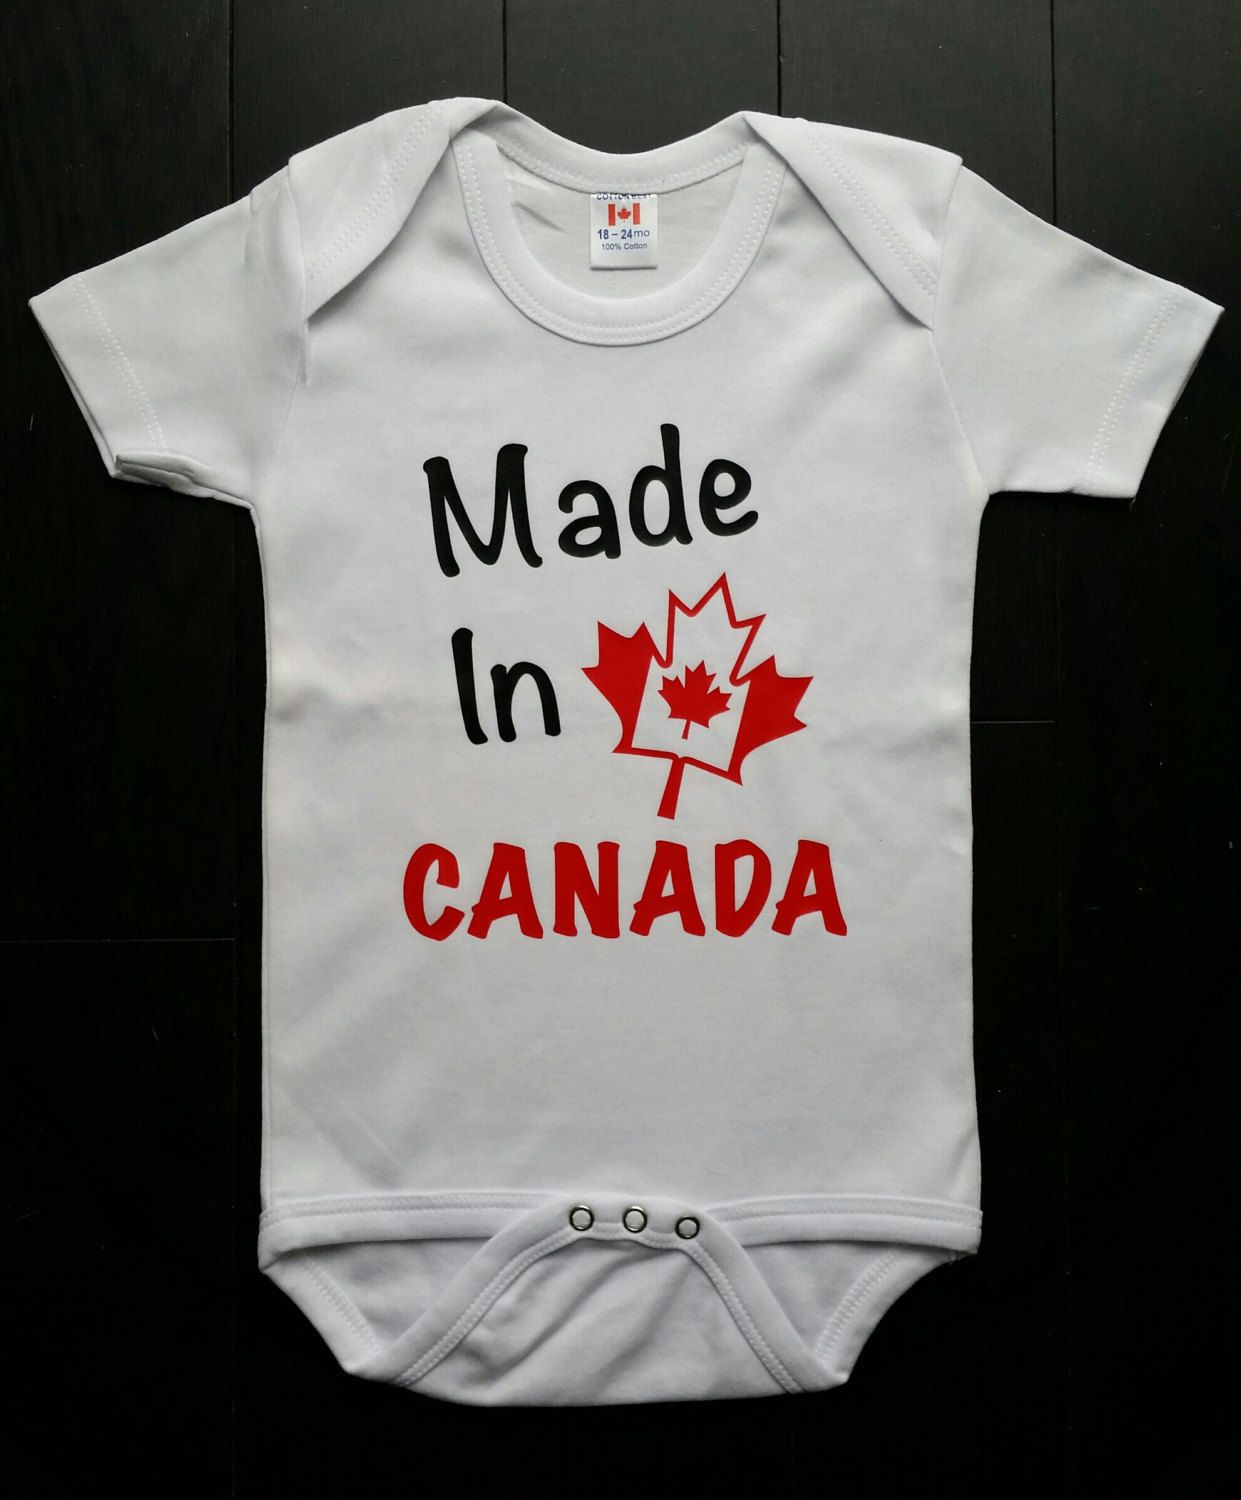 Made In Canada Newborn Unisex Baby Bodysuit Canadian Flag Baby Shower Gift Kids Online Clothing Stores Unisex Baby Kids Outfits